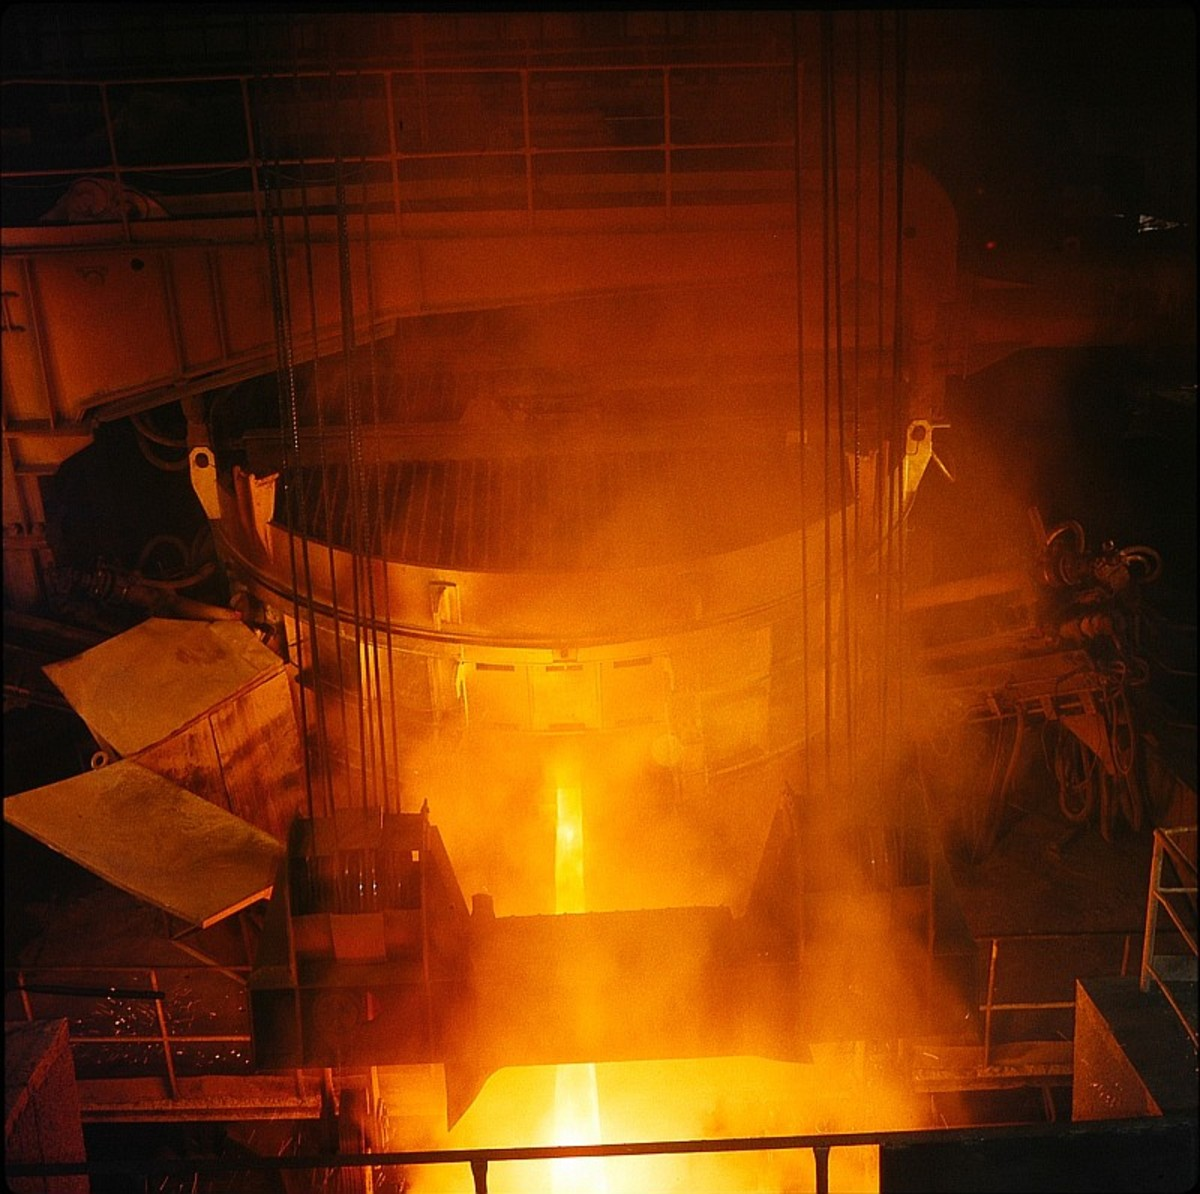 An electric arc furnace (the large cylinder) being tapped at a steel mill.